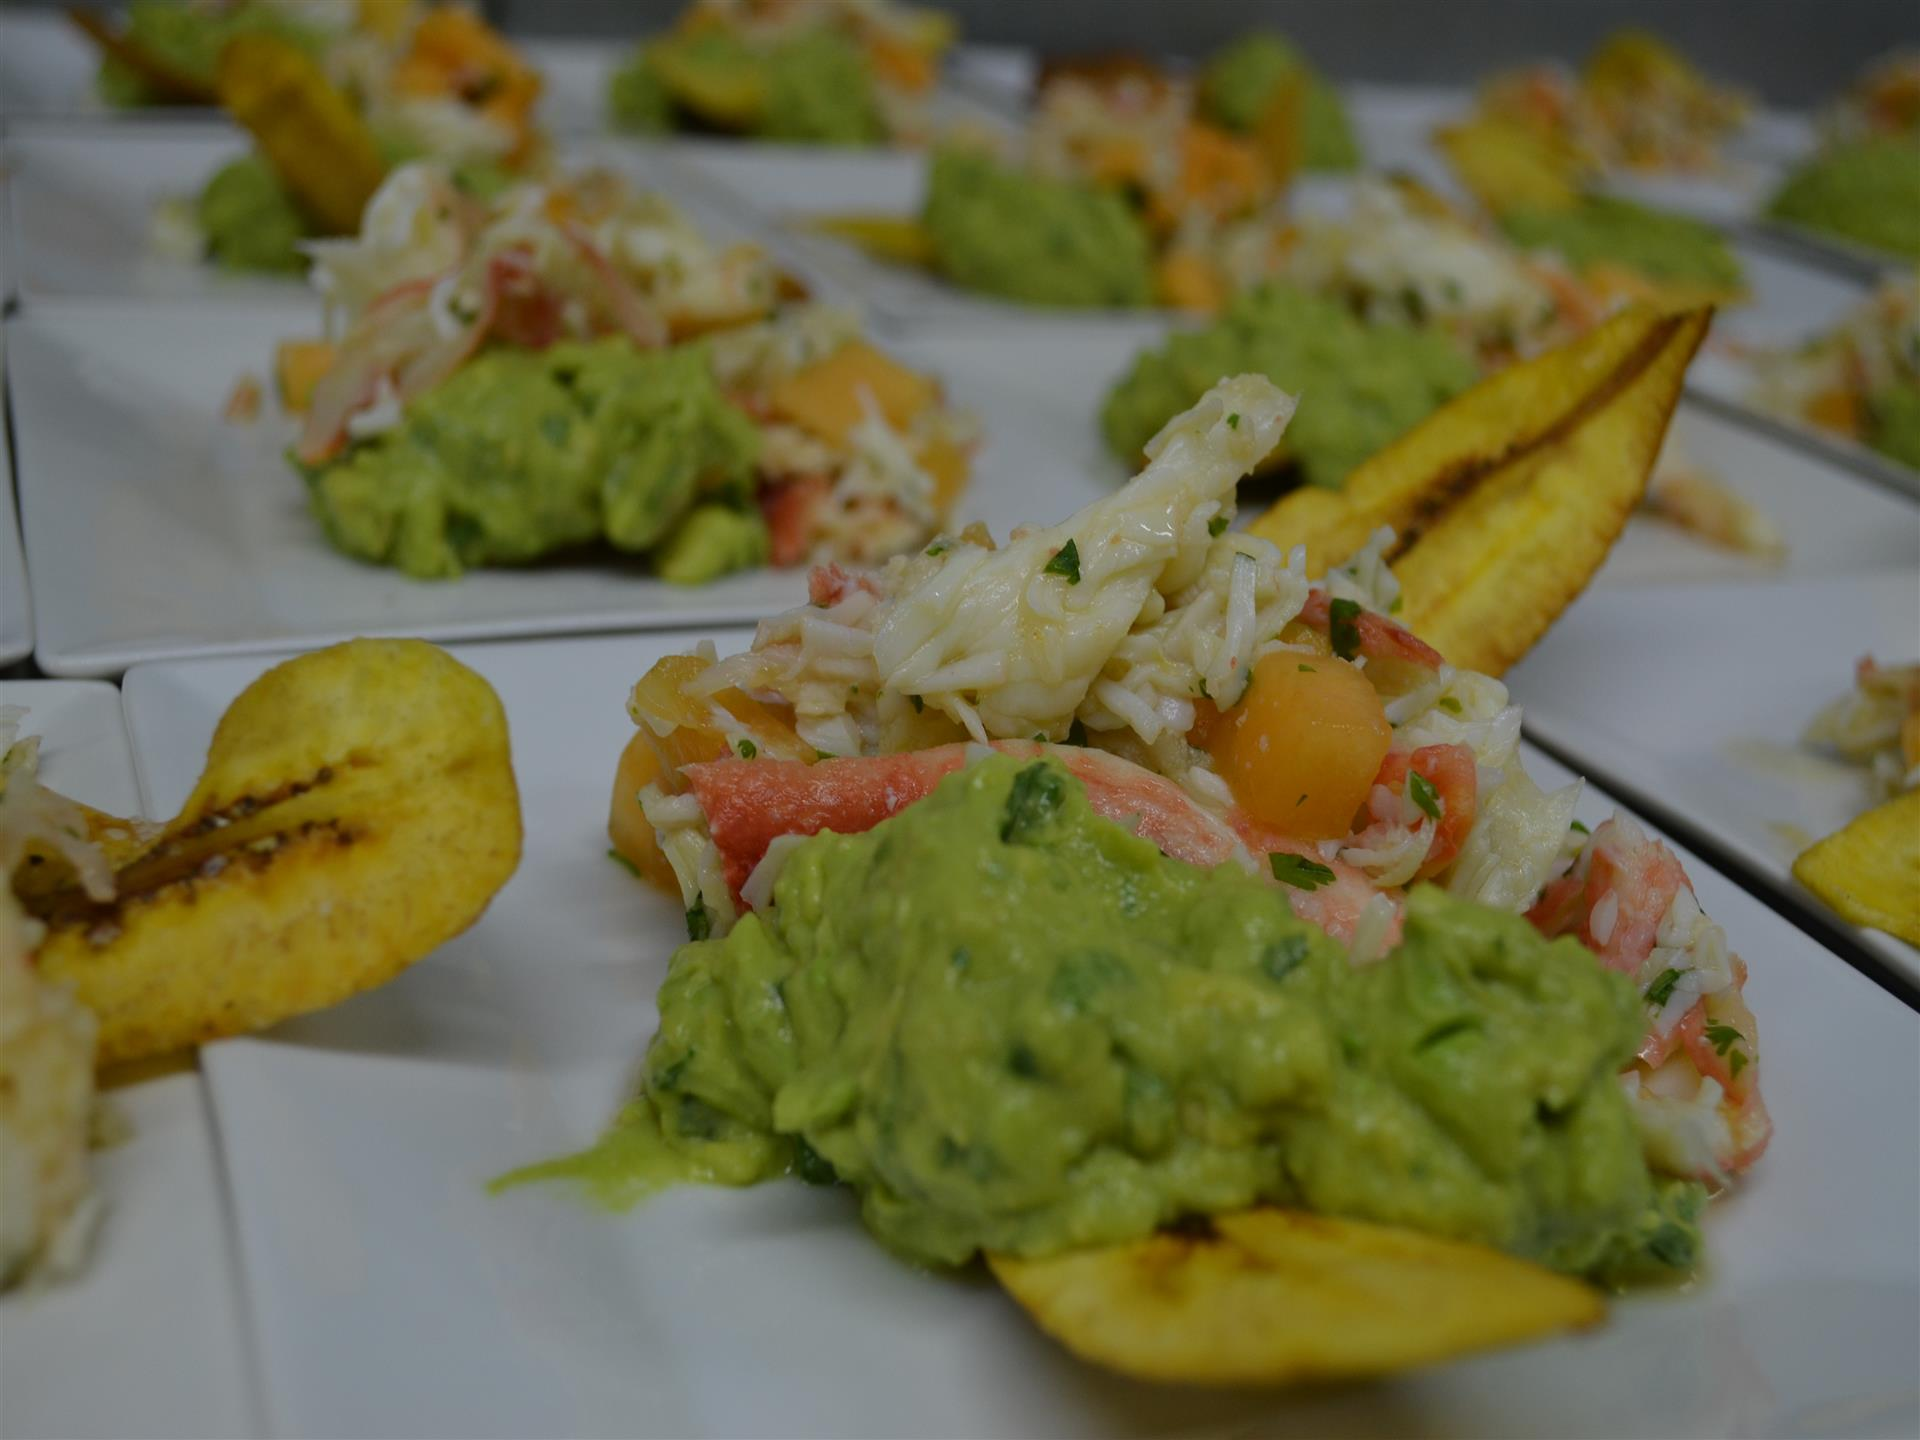 Shrimp served with fresh salad and guacamole